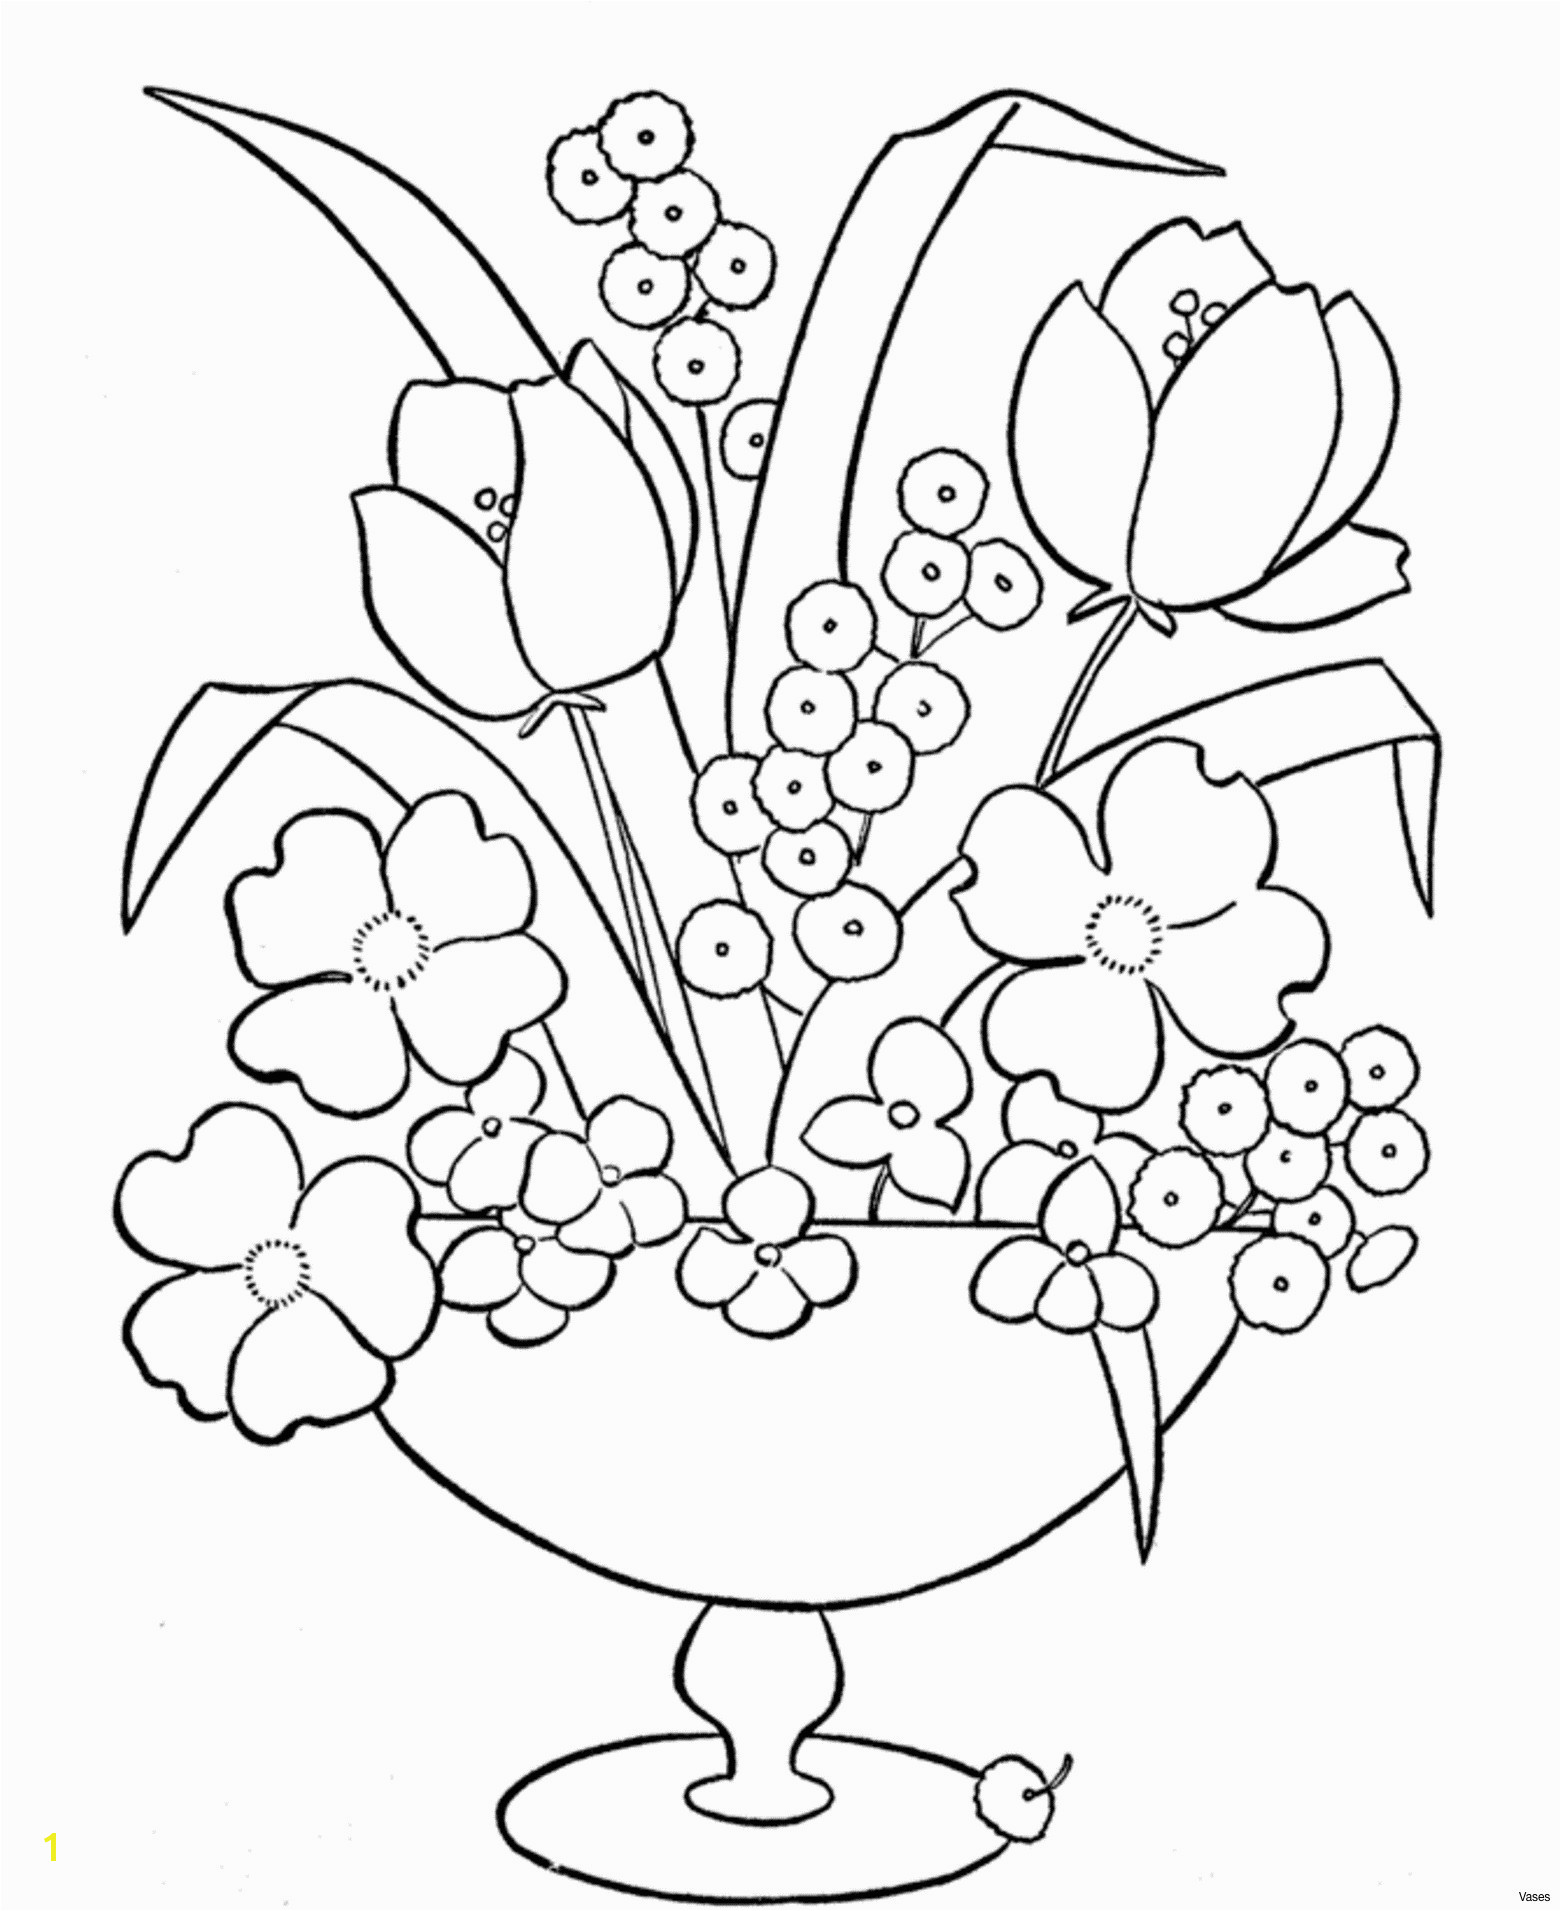 Swimming Coloring Pages New Cool Vases Flower Vase Coloring Page Pages Flowers In A top I